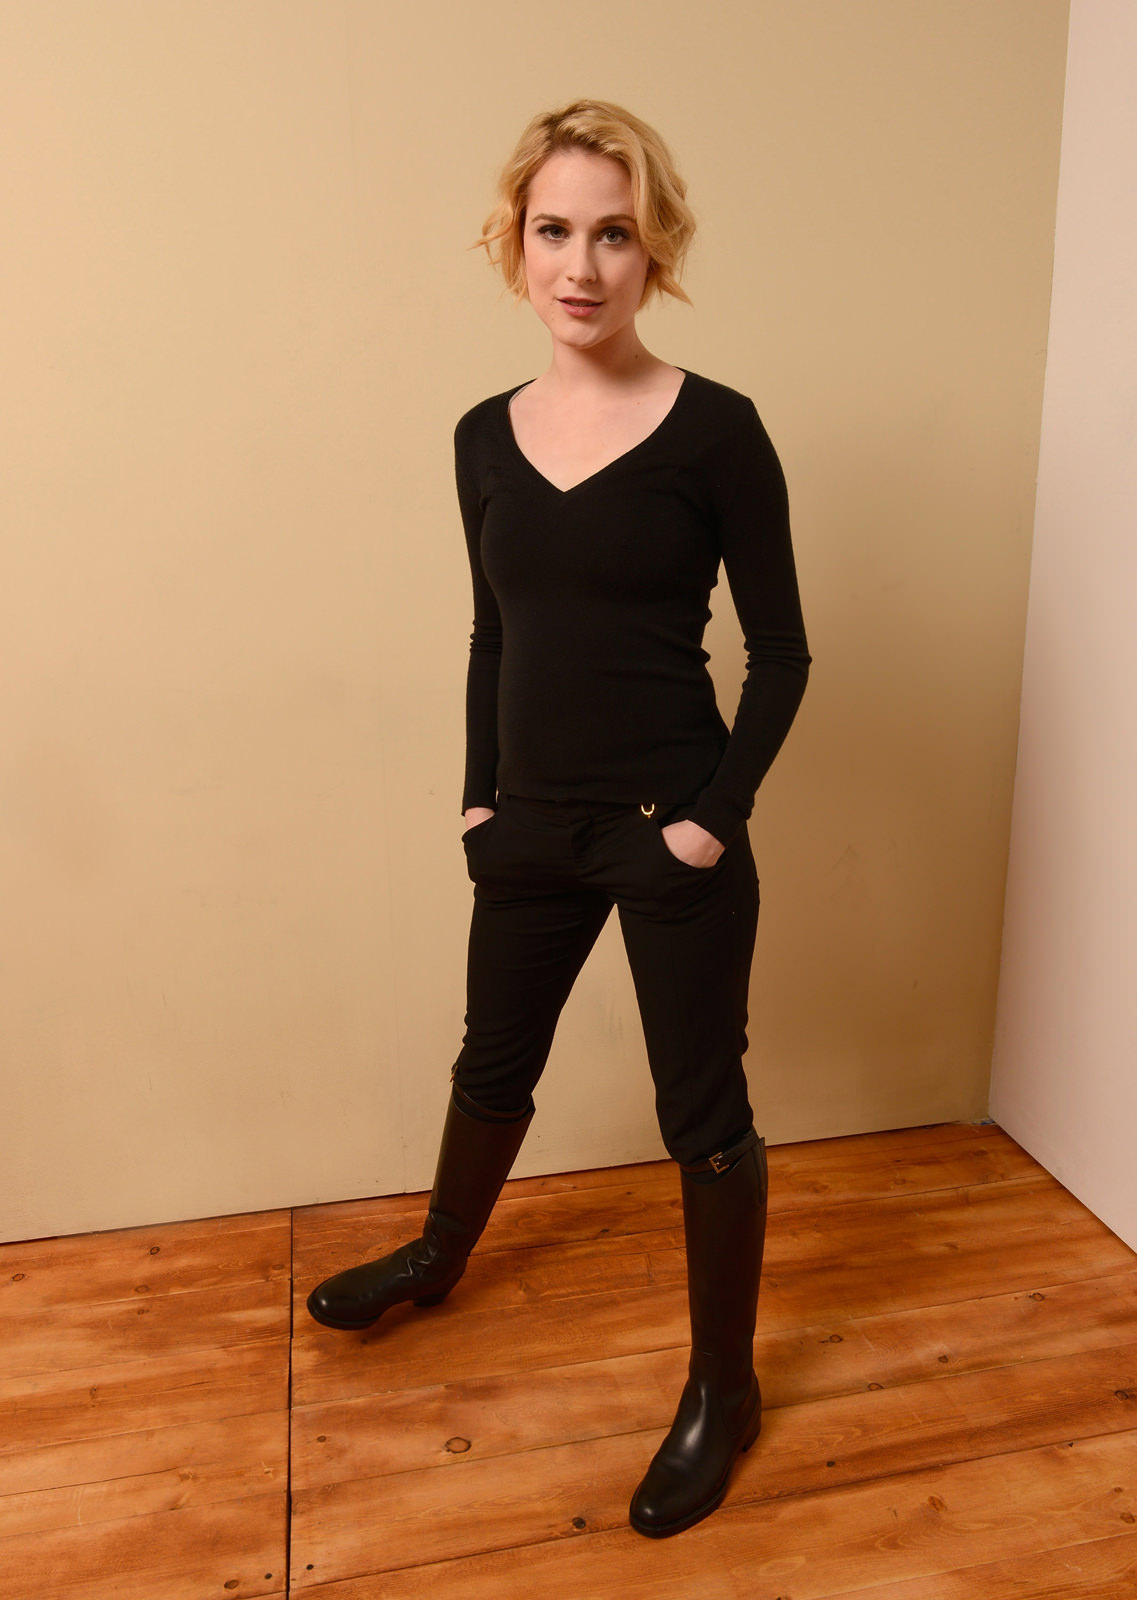 Evan Rachel Wood Photo Galleryrachel-wood-photo-gallery-10